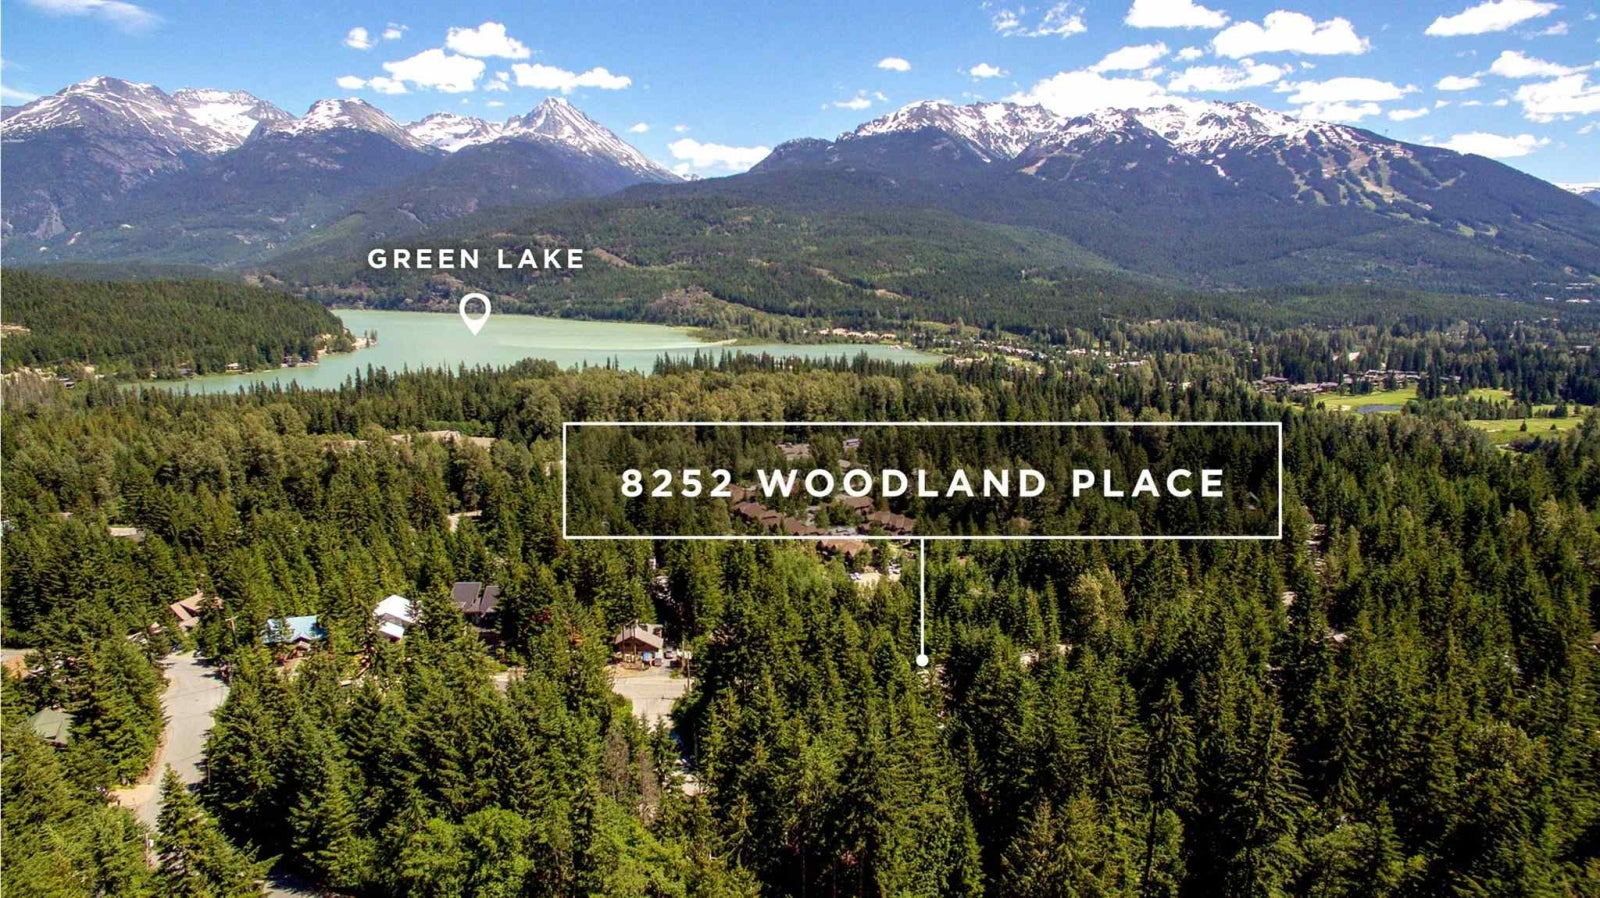 8252 WOODLAND PLACE - Alpine Meadows House/Single Family for sale, 5 Bedrooms (R2598110) #4